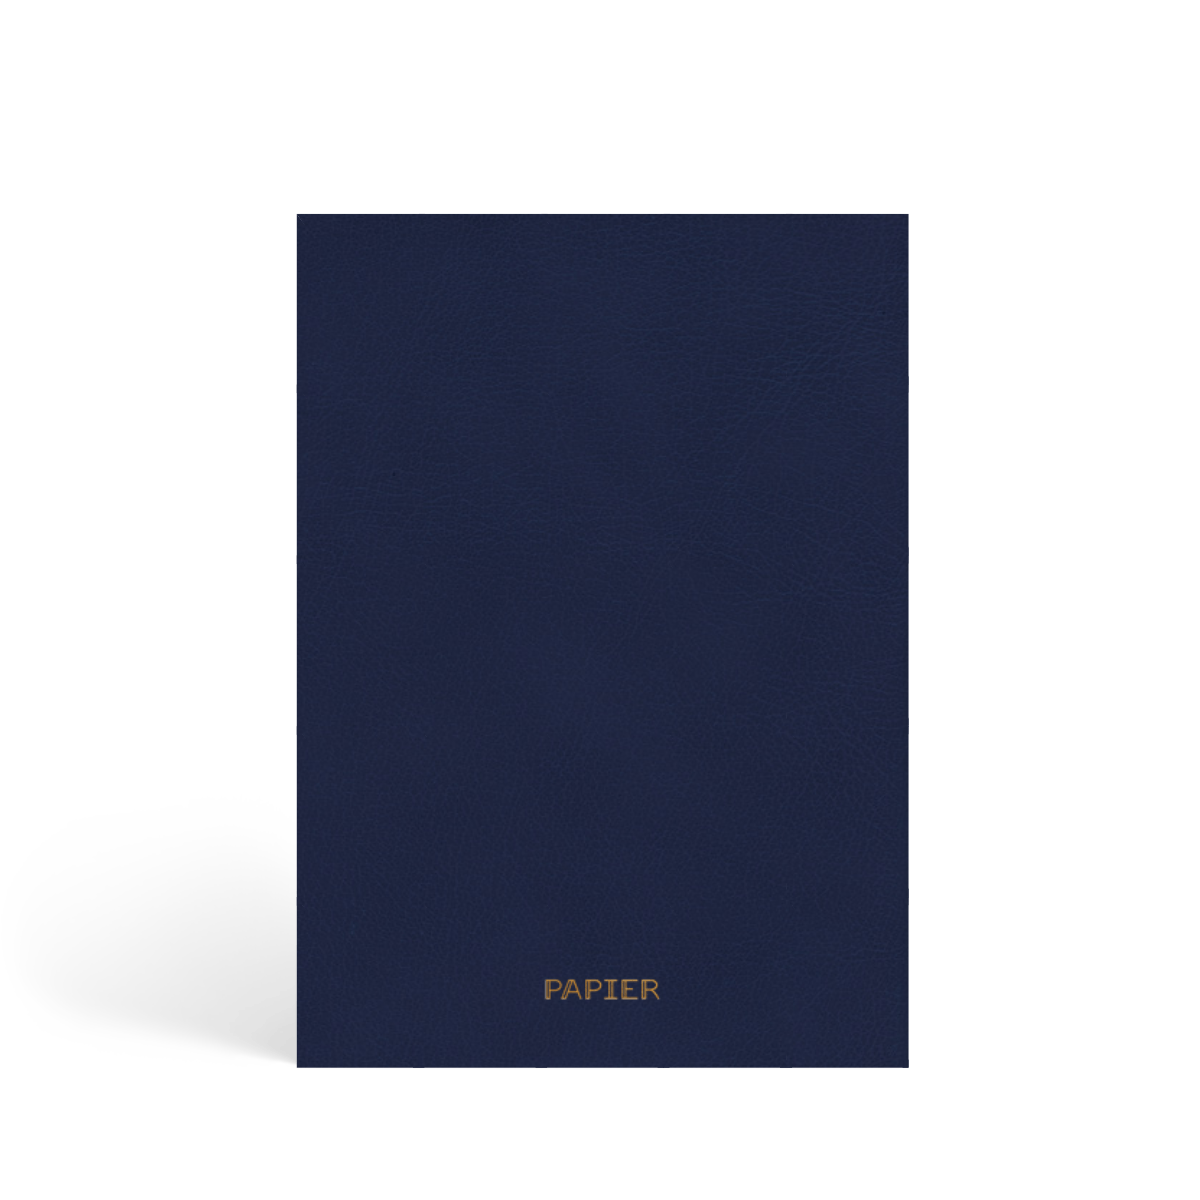 Https%3a%2f%2fwww.papier.com%2fproduct image%2f93643%2f5%2froyal blue notes 23419 back 1573232581.png?ixlib=rb 1.1